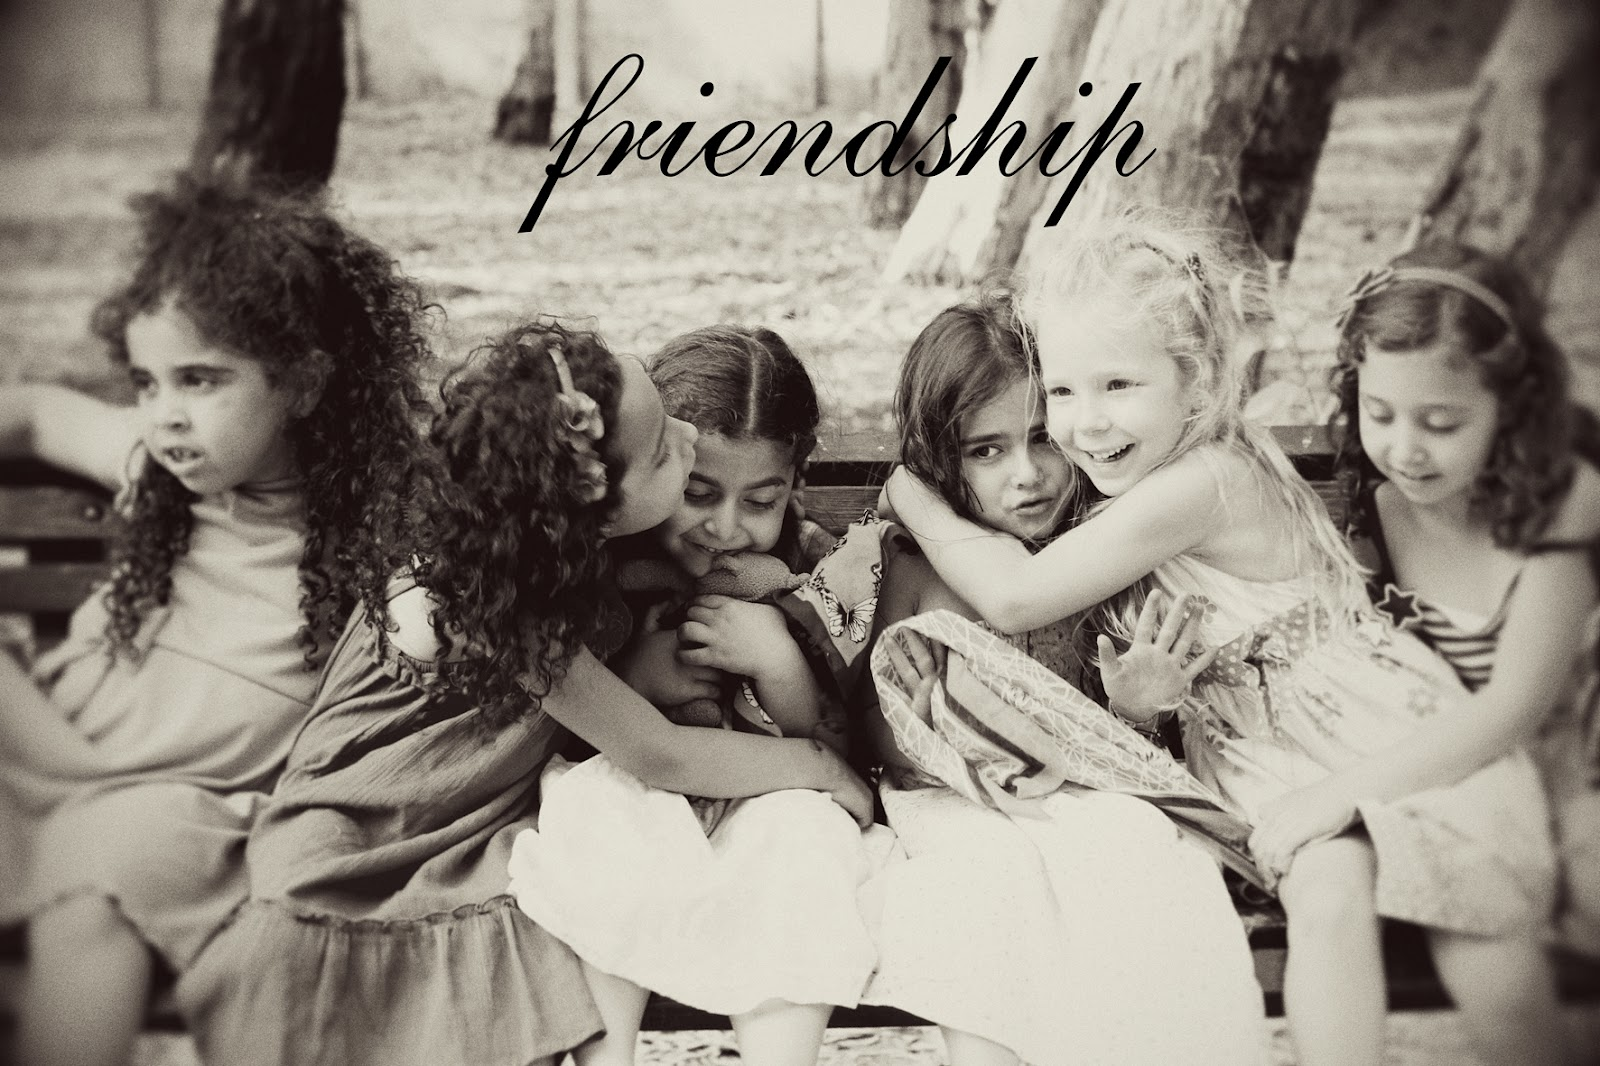 friendship-wallpaper-wp3805660